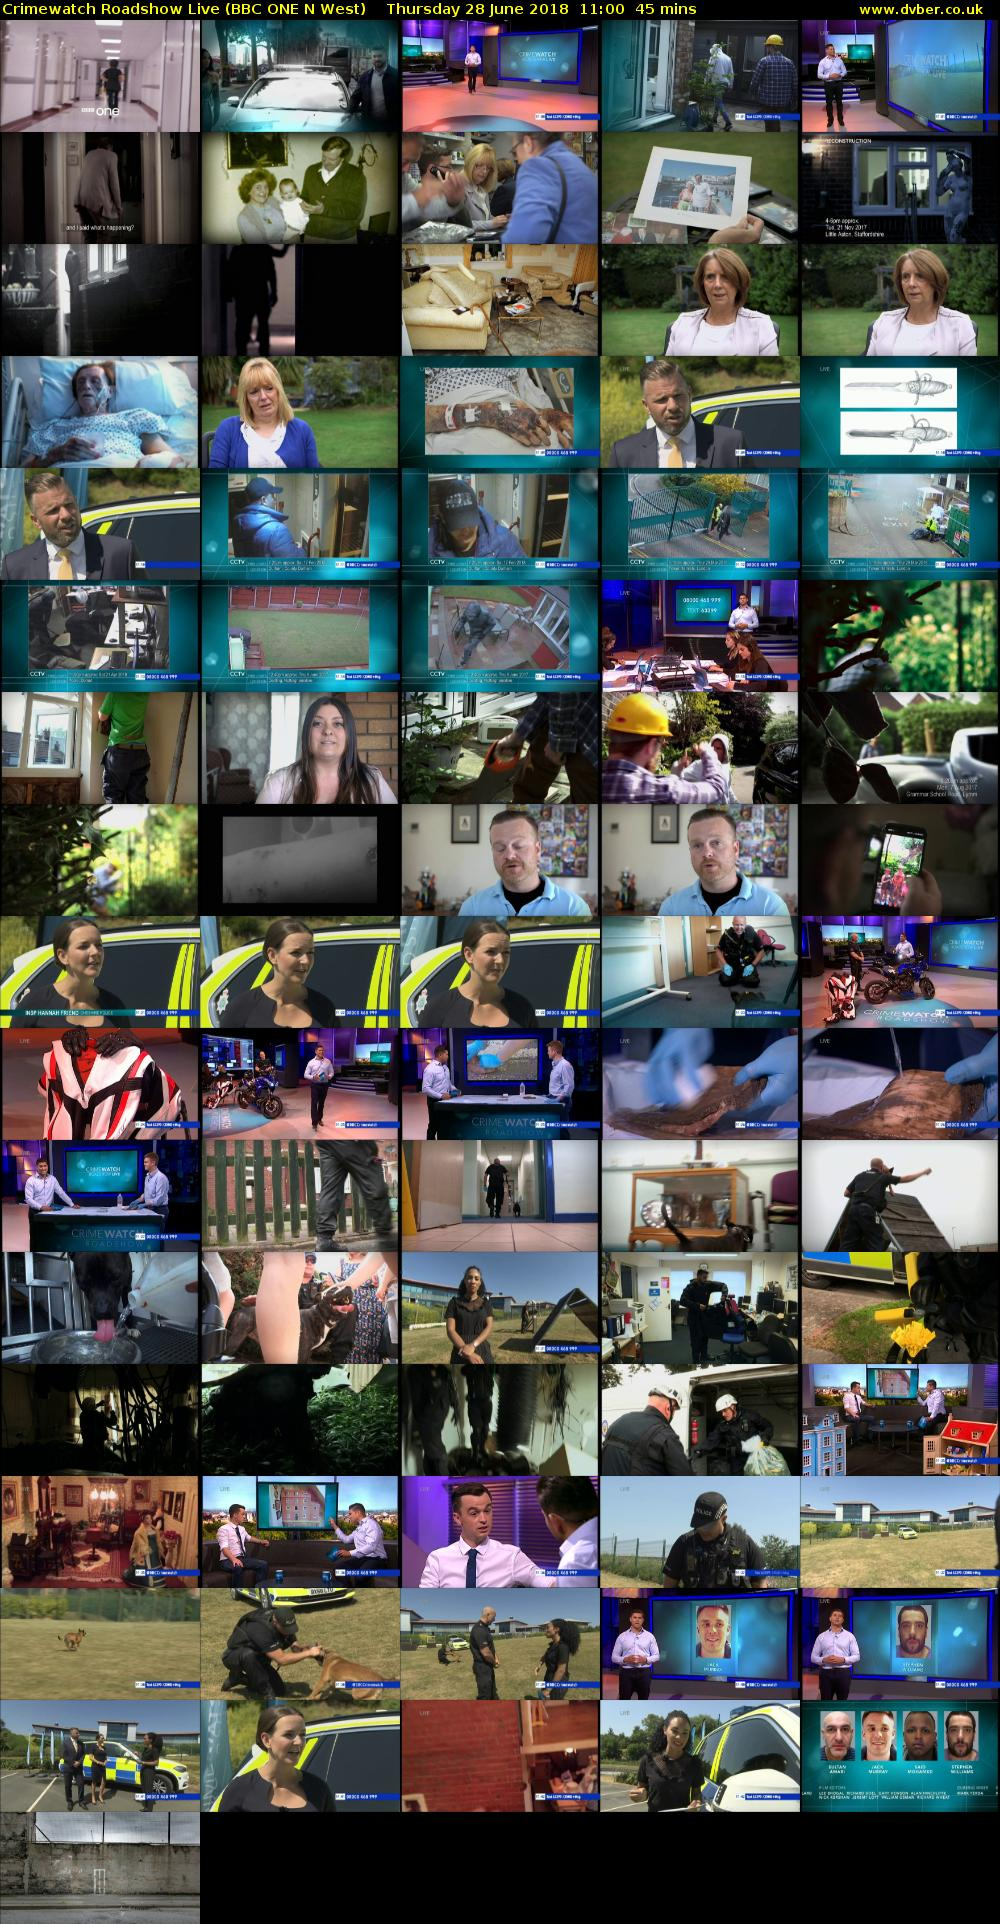 Crimewatch Roadshow Live (BBC ONE N West) Thursday 28 June 2018 11:00 - 11:45